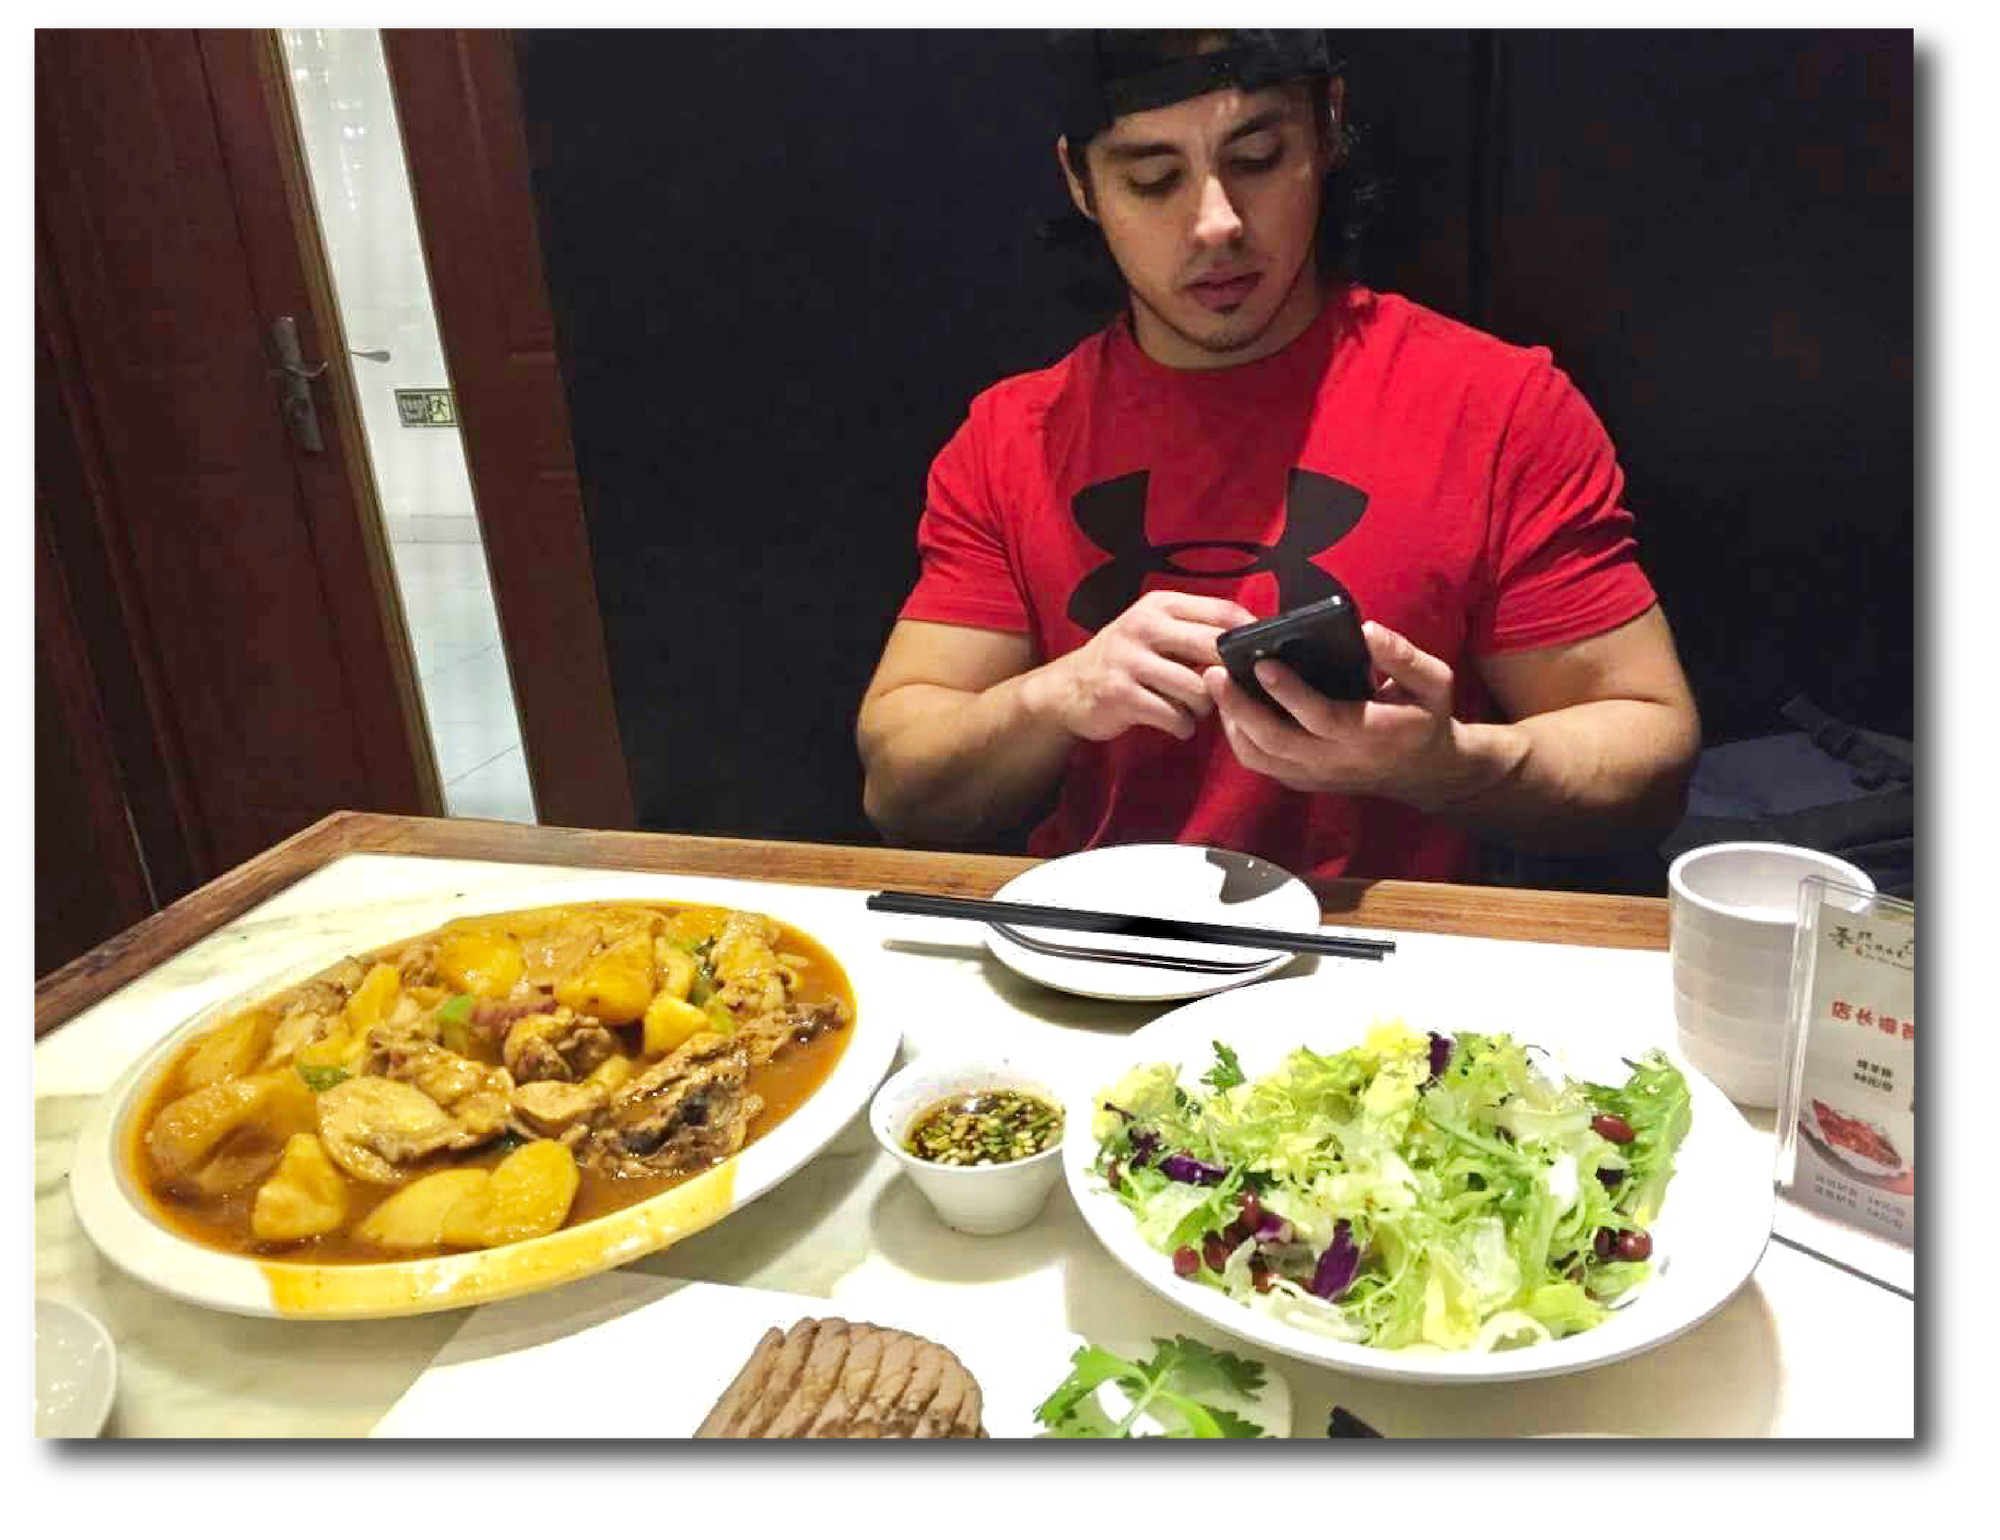 Thats me eating out, chowing down and building solid, LEAN muscle mass using my custom diet protocols you'll discover on this page!